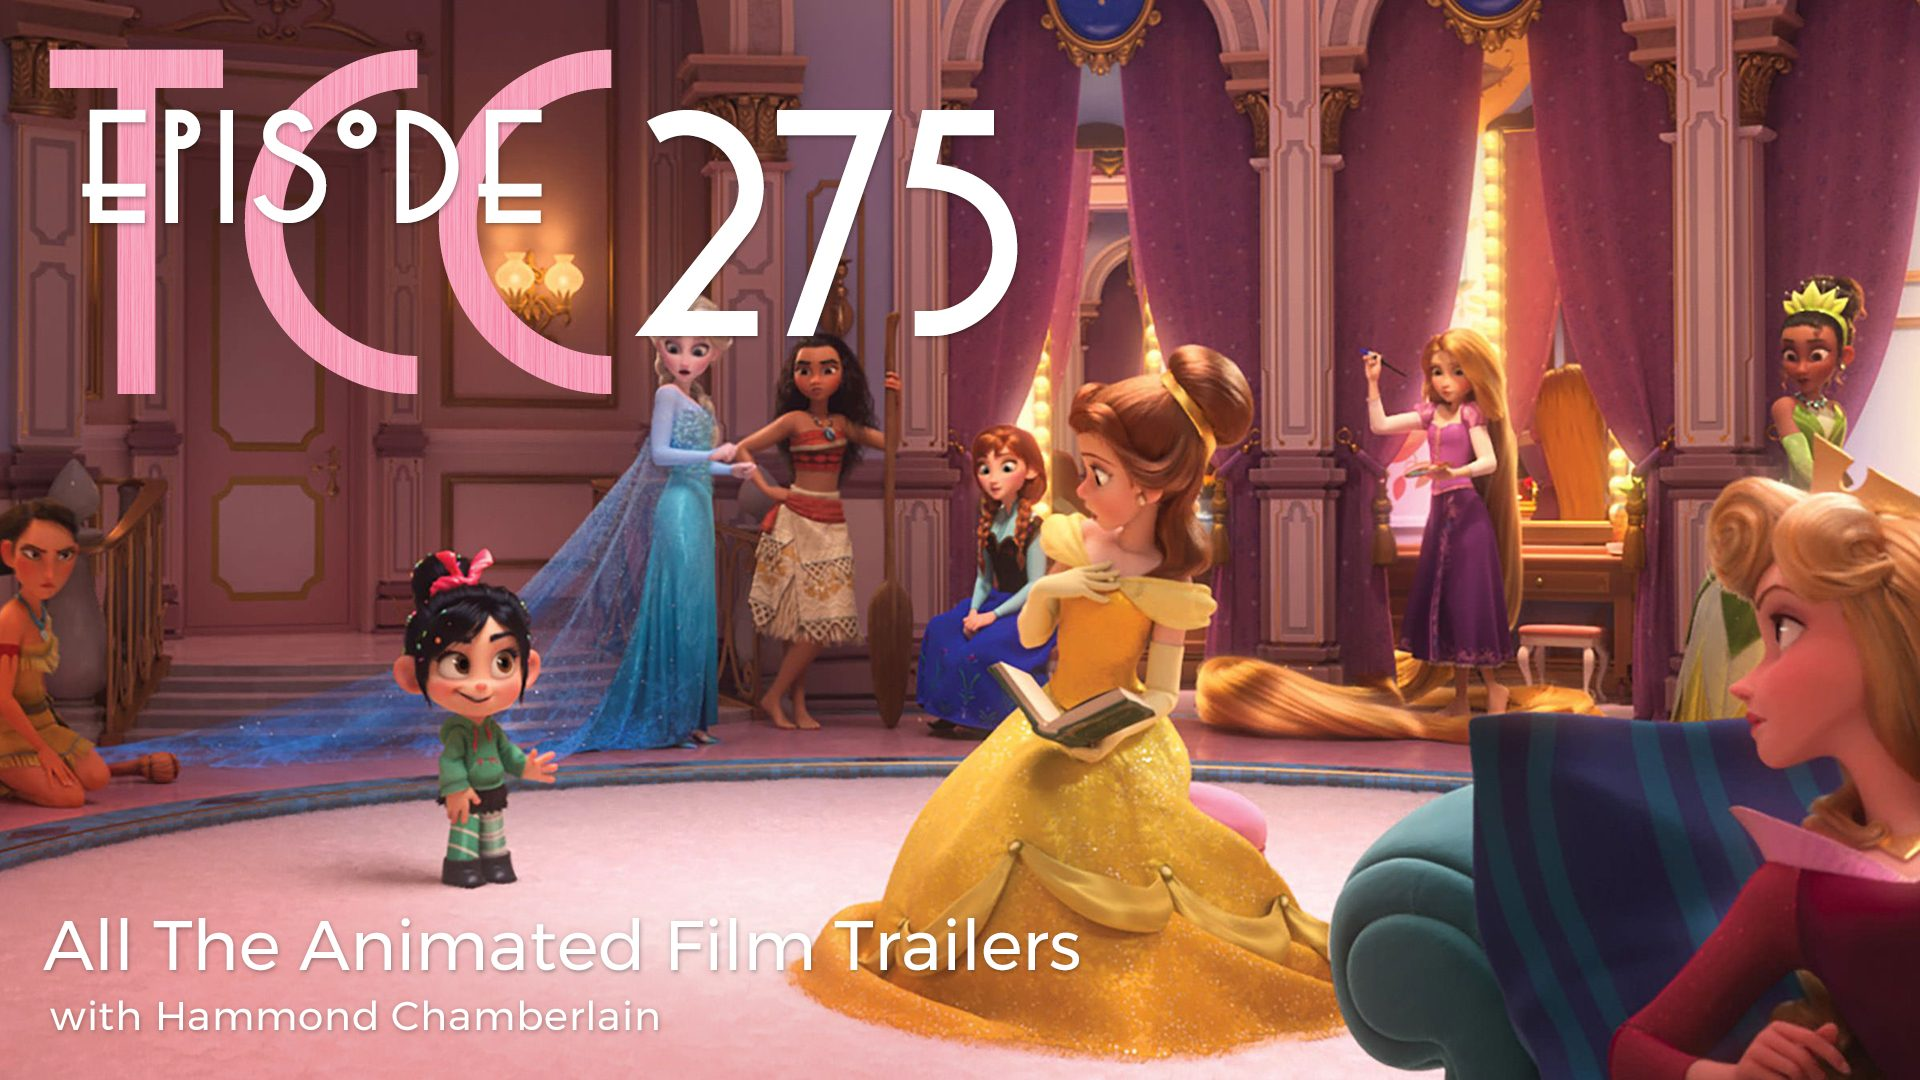 The Citadel Cafe 275: All The Animated Film Trailers